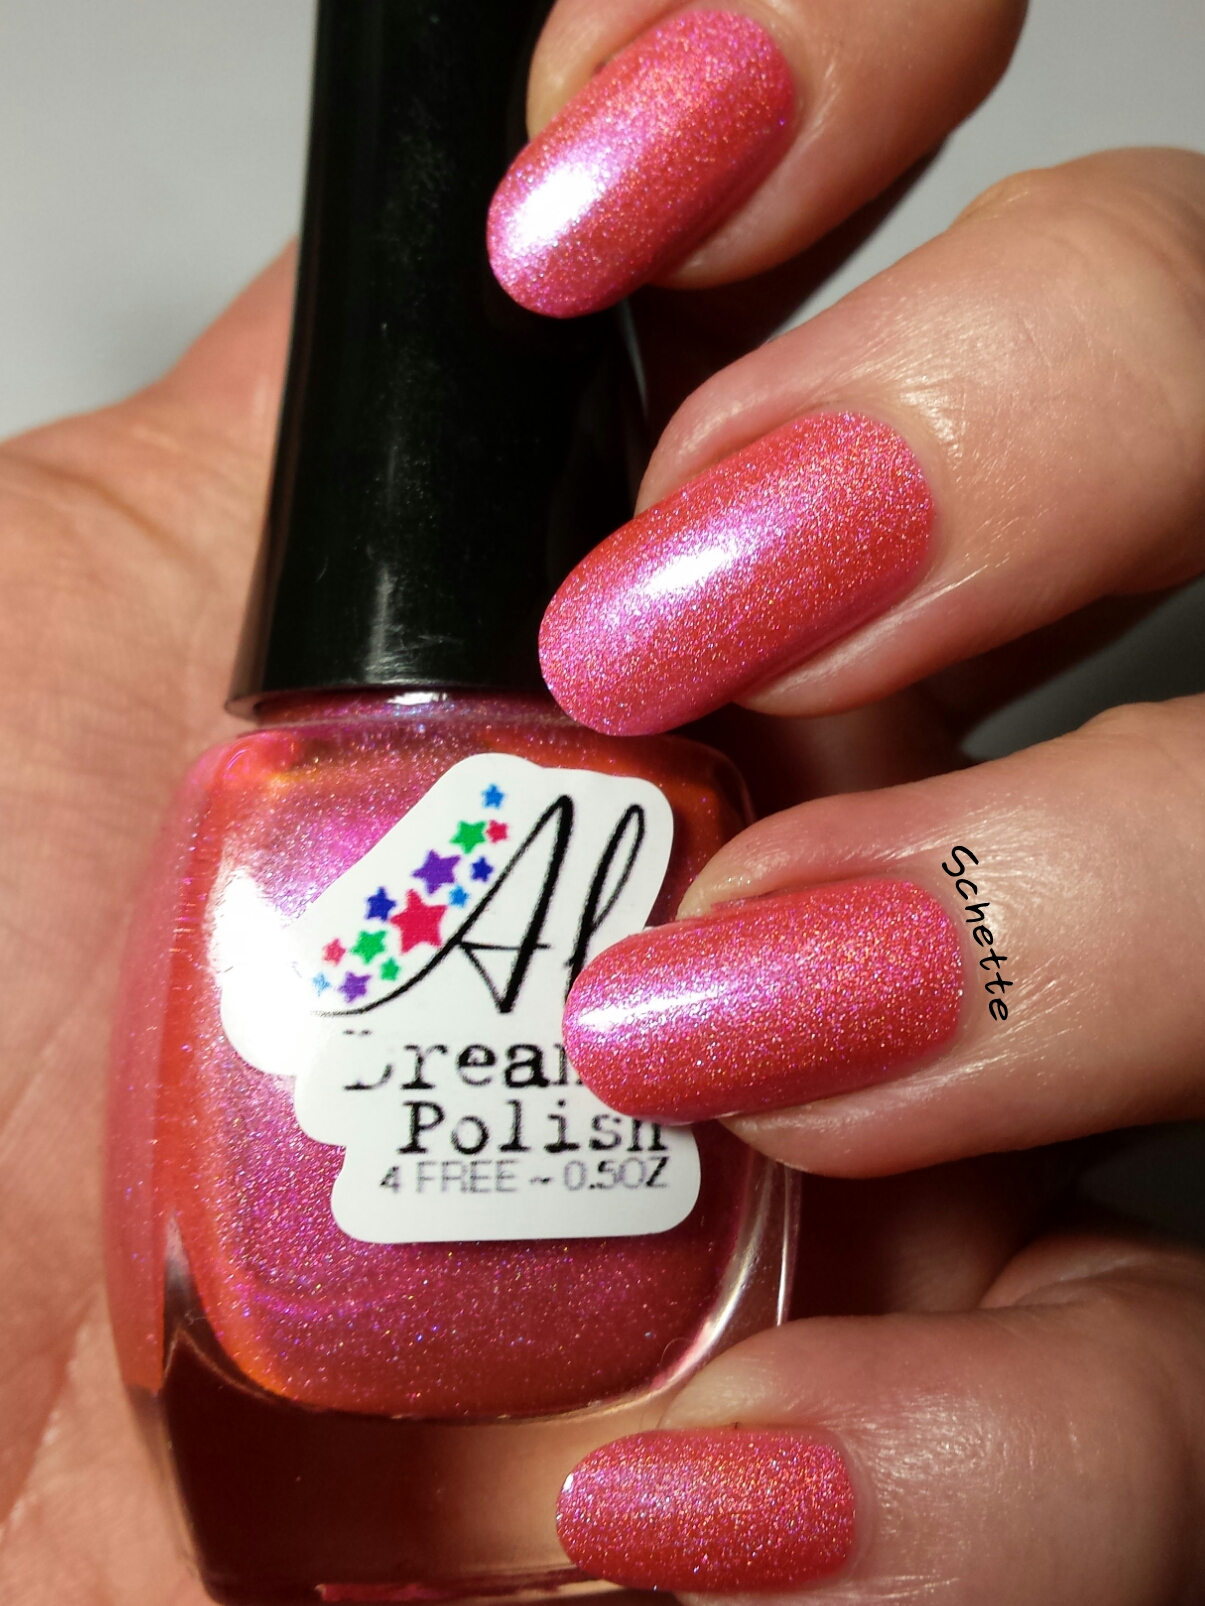 Le vernis Aly's Dream Pink Berry - Holo Grail Box Mars 2014